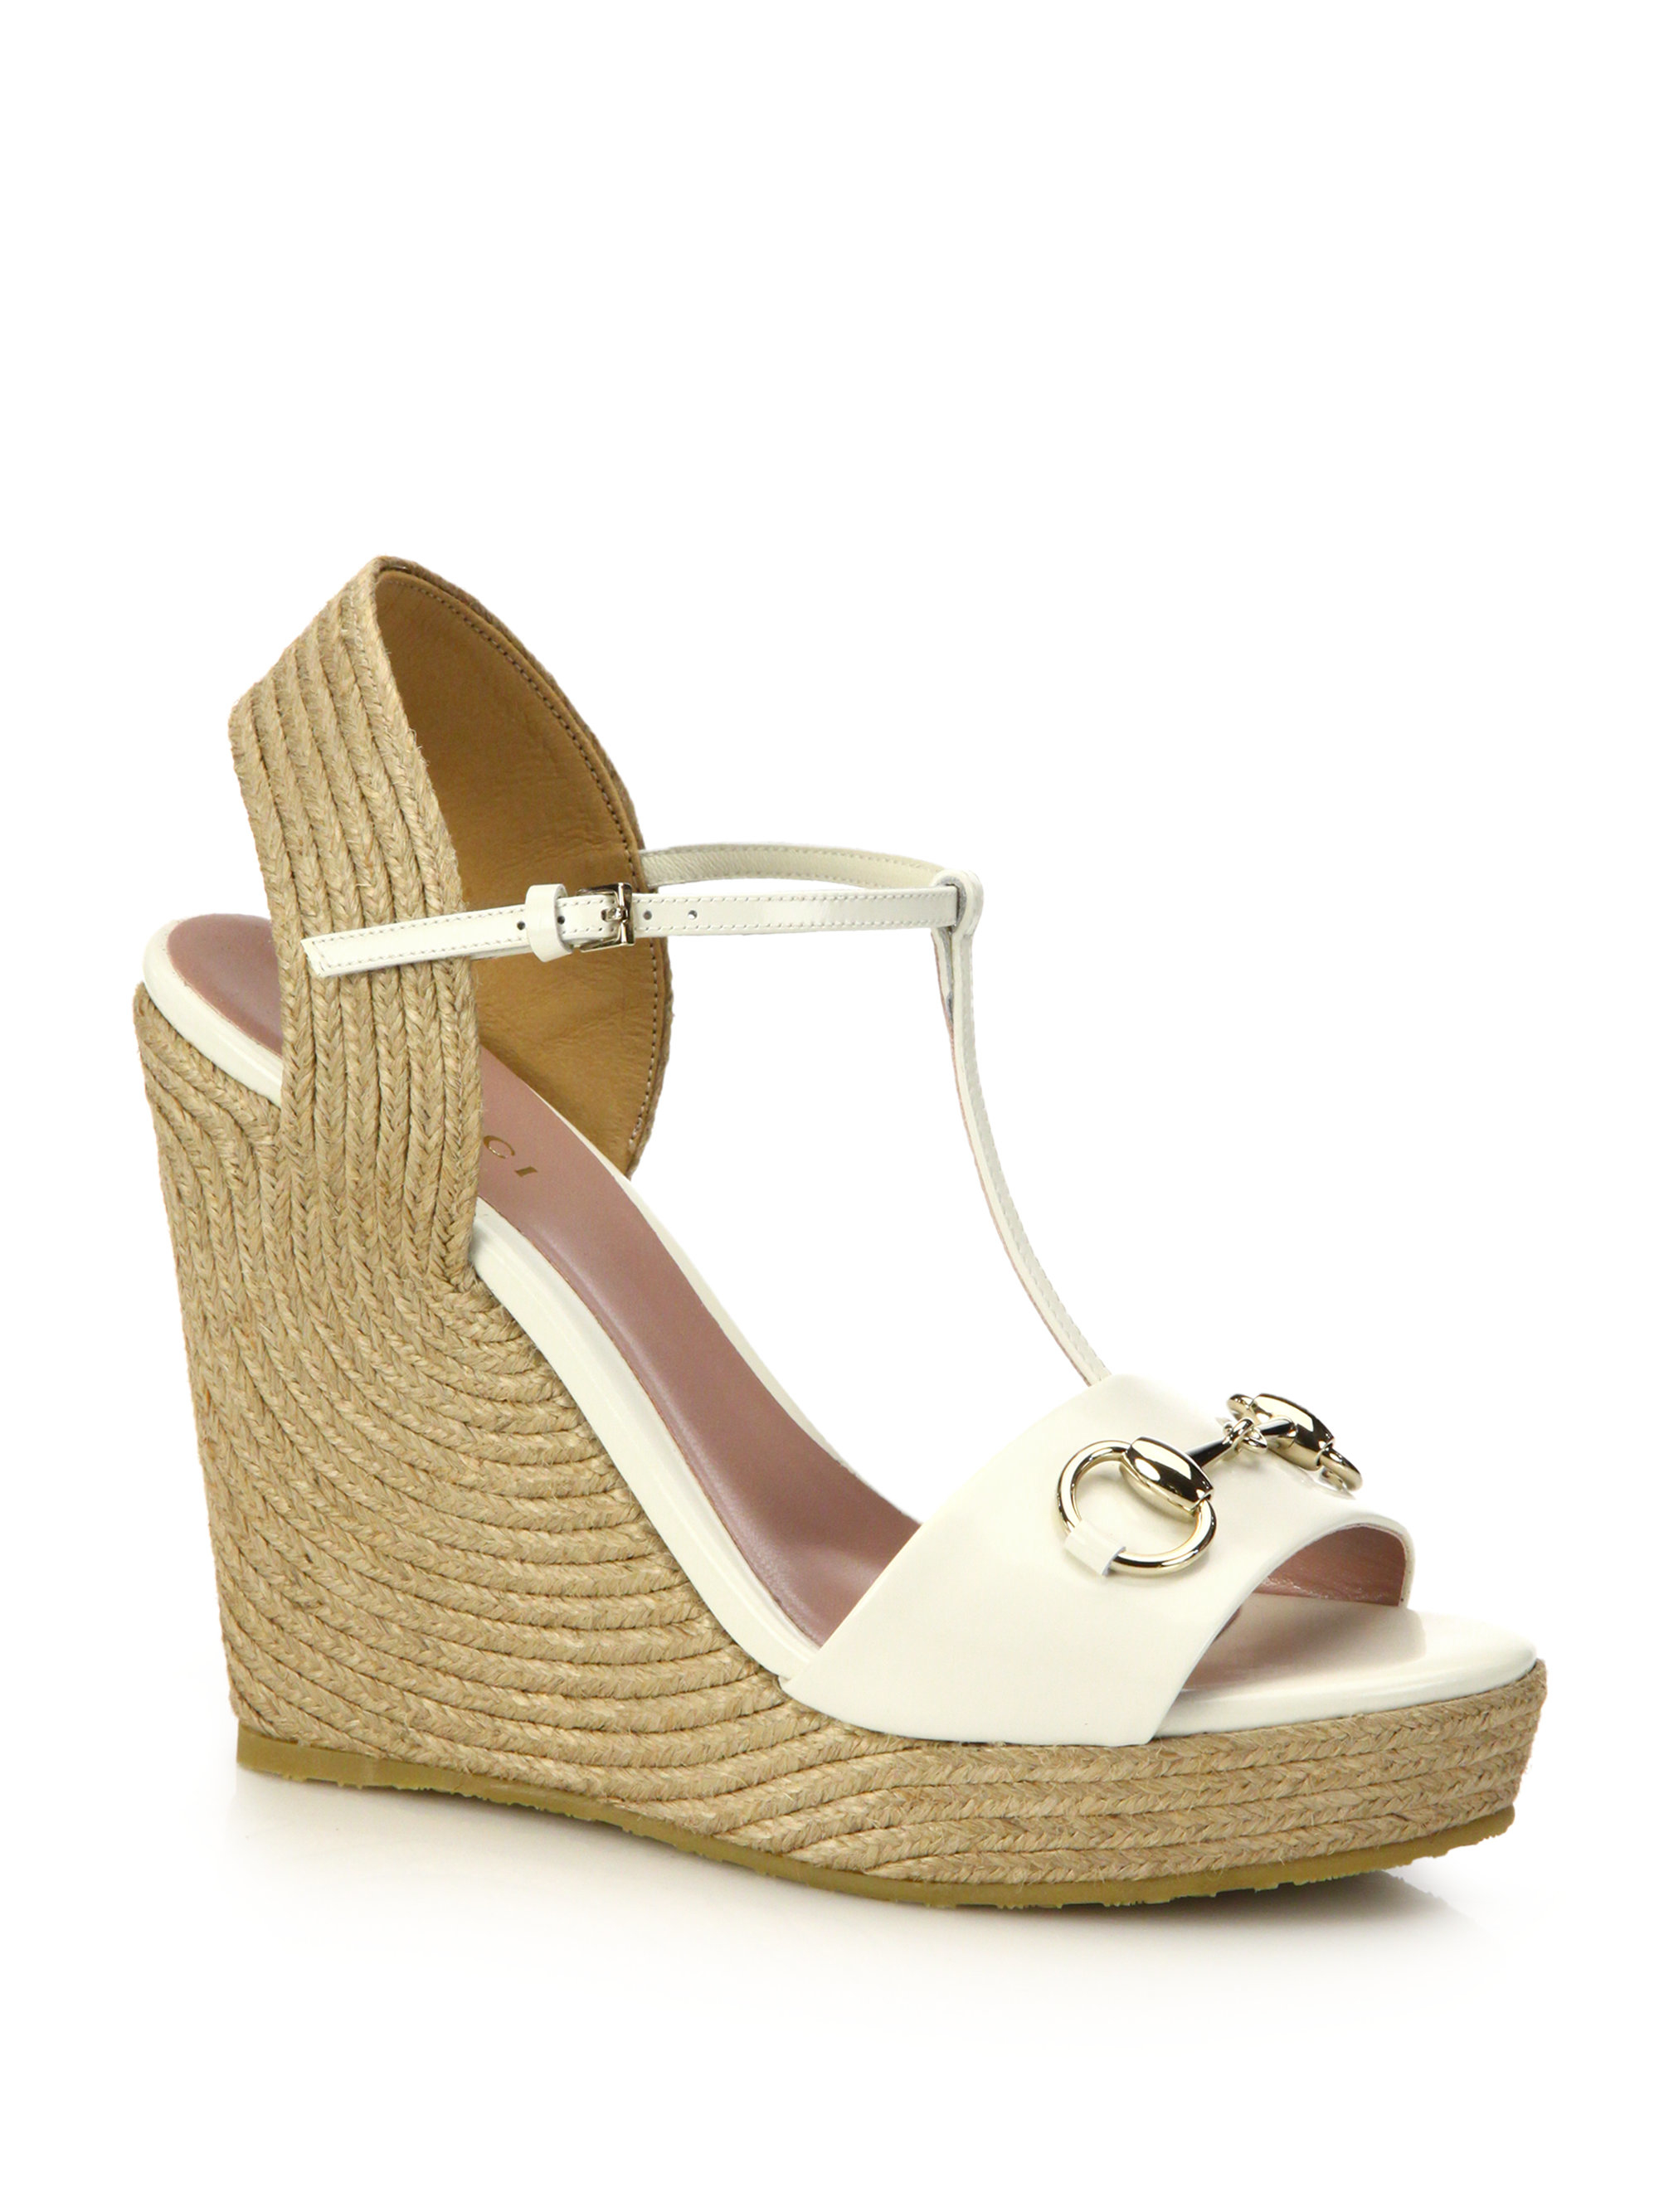 702b287cd4b0 Lyst - Gucci Patent Leather Horsebit Espadrille Wedge Sandals in White